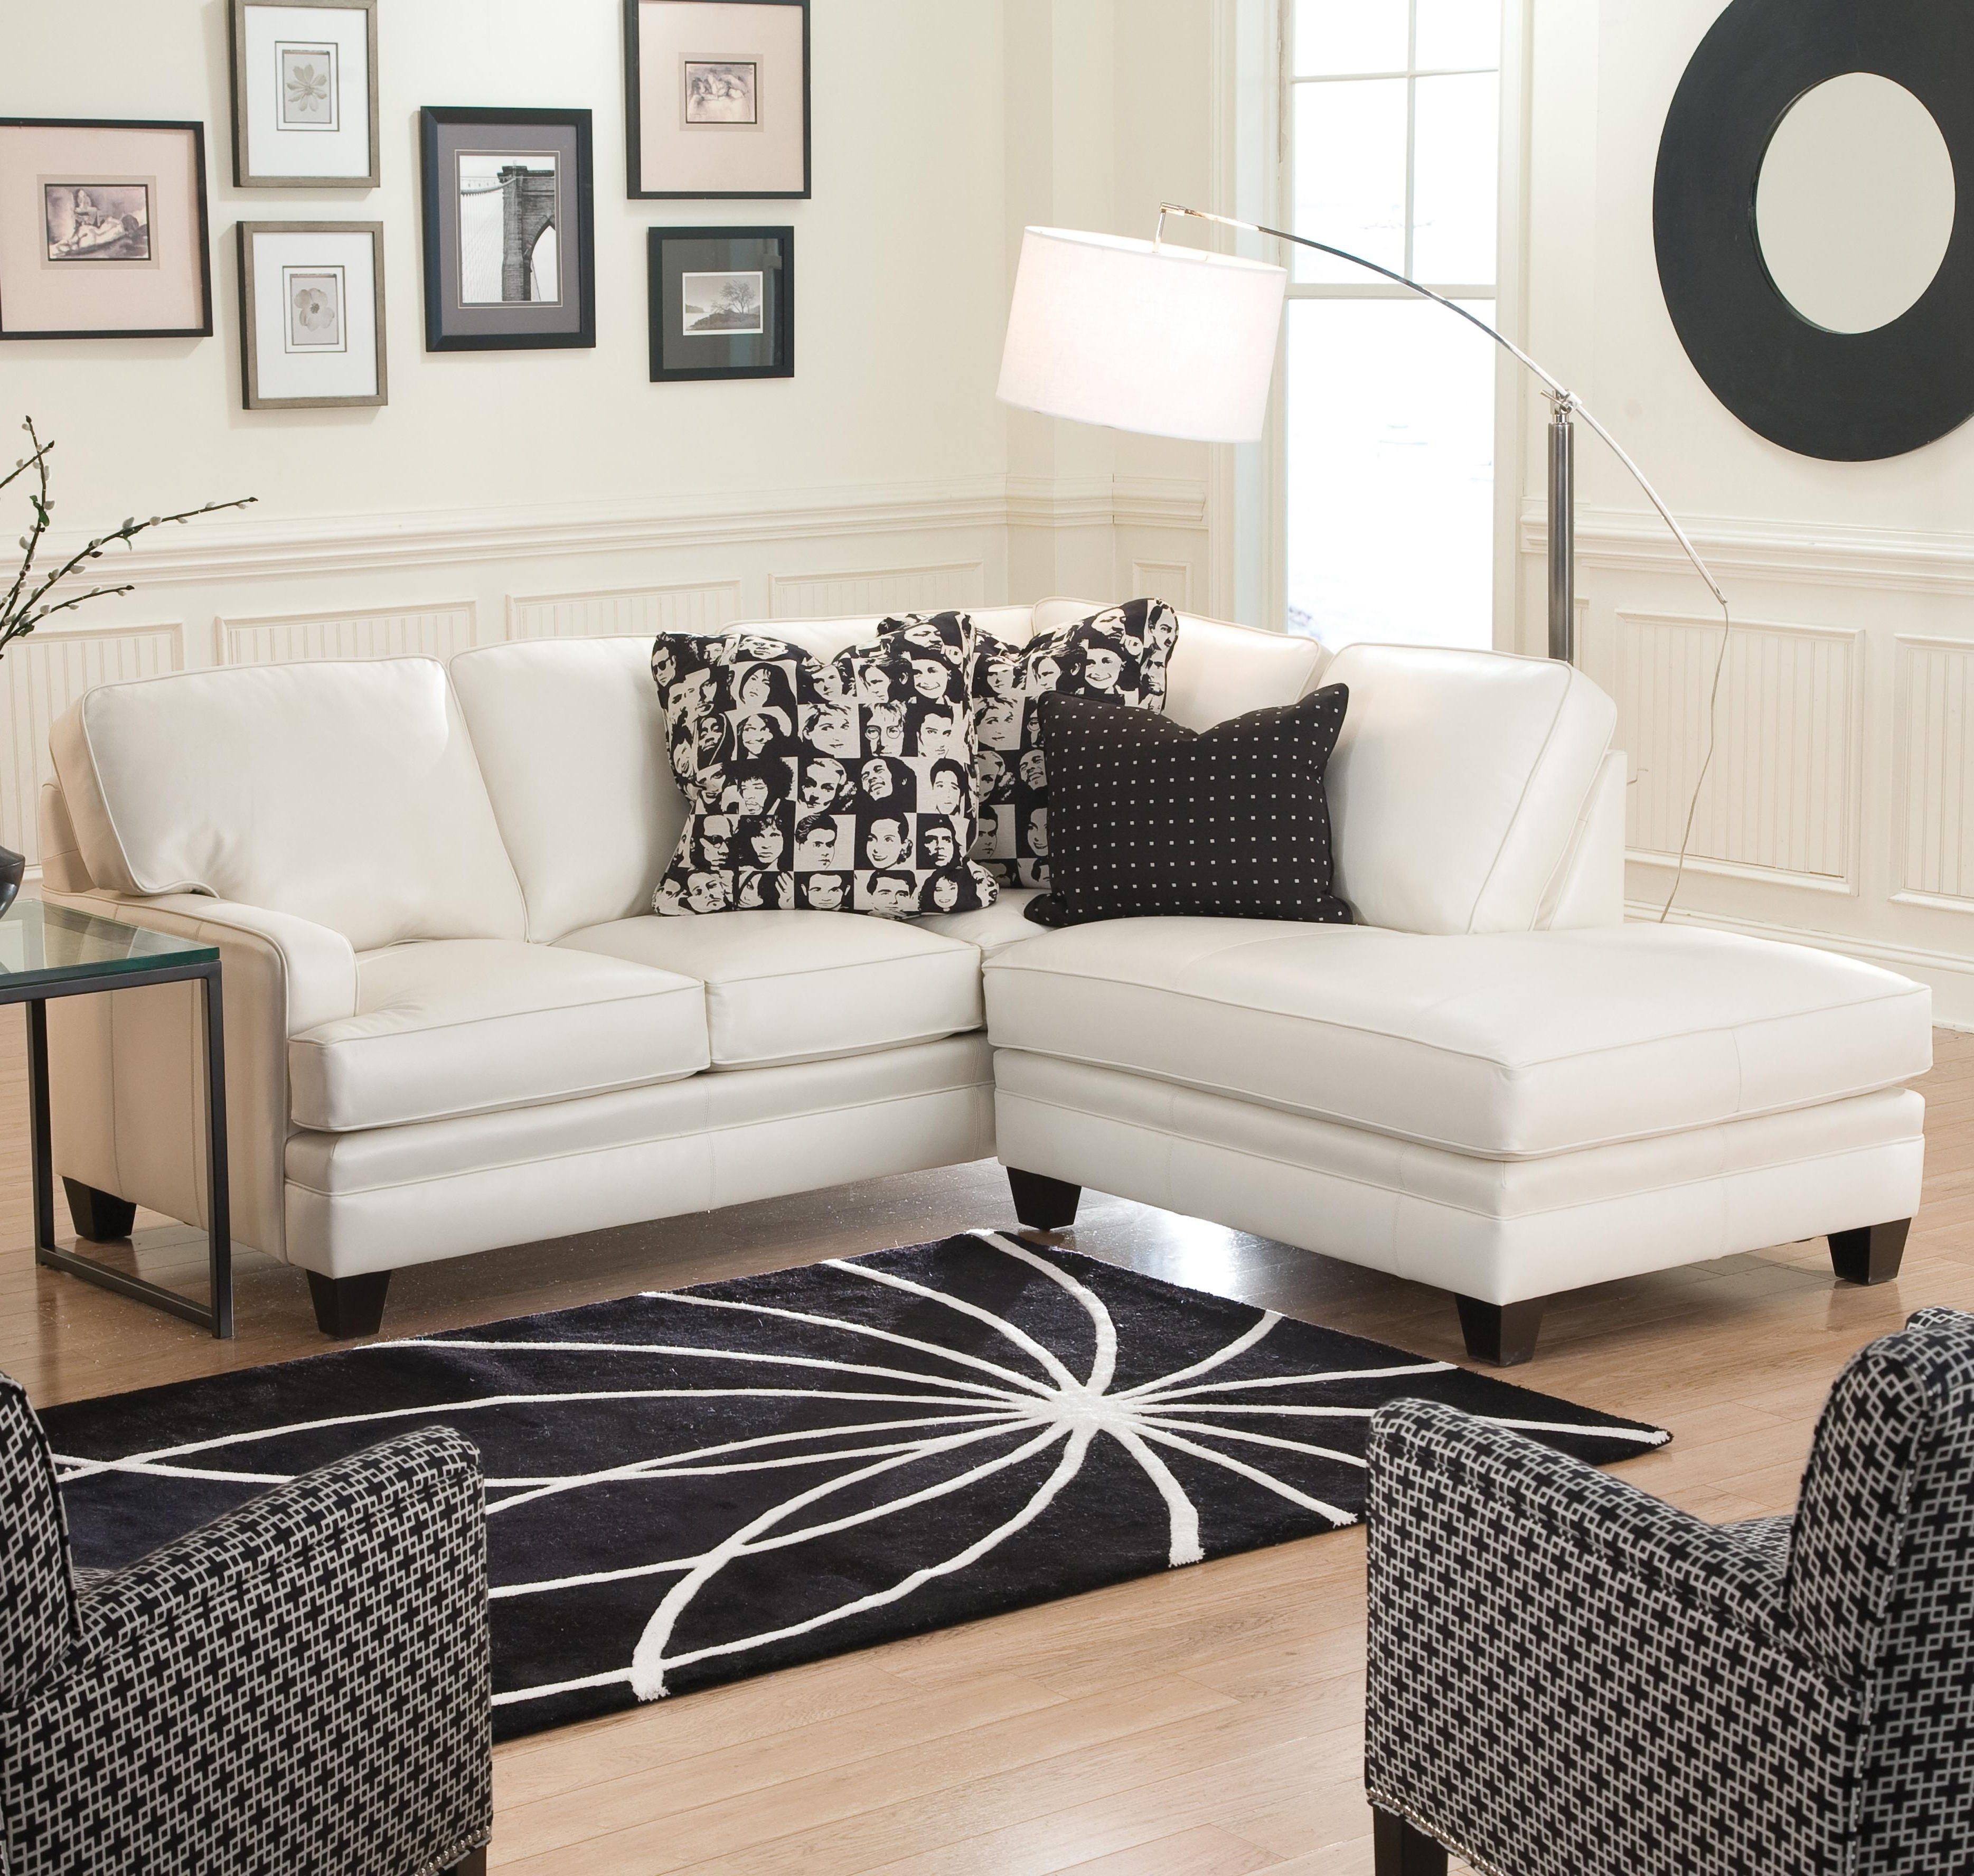 Well Known Small Sectional Sofas Regarding Small Sectional Sofa With Contemporary Looksmith Brothers (View 9 of 15)